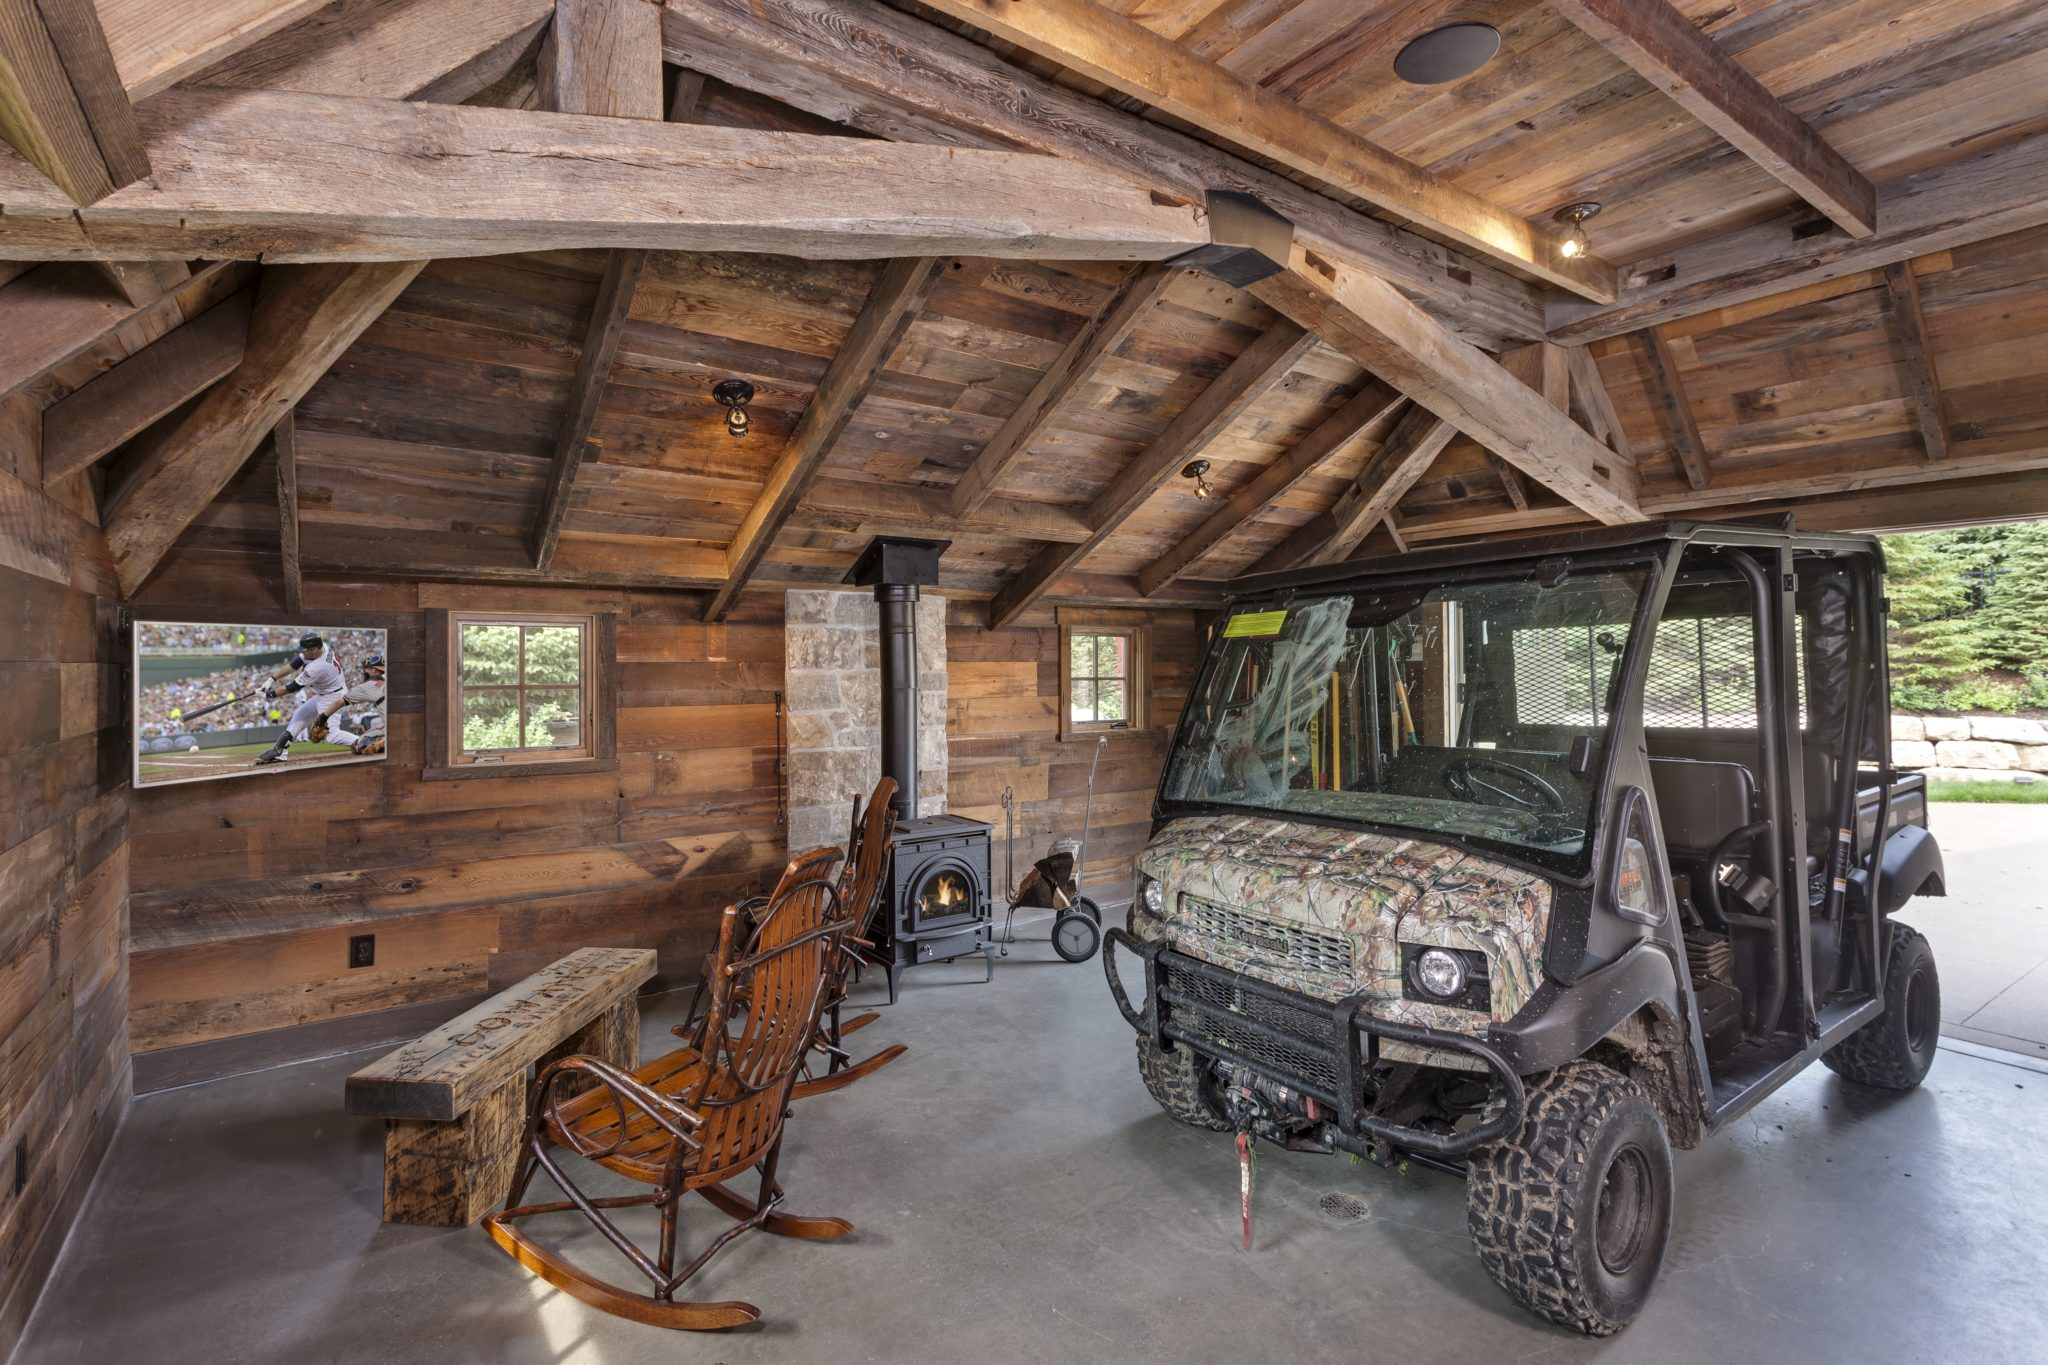 Rustic man cave garage by Murphy & Co. Design